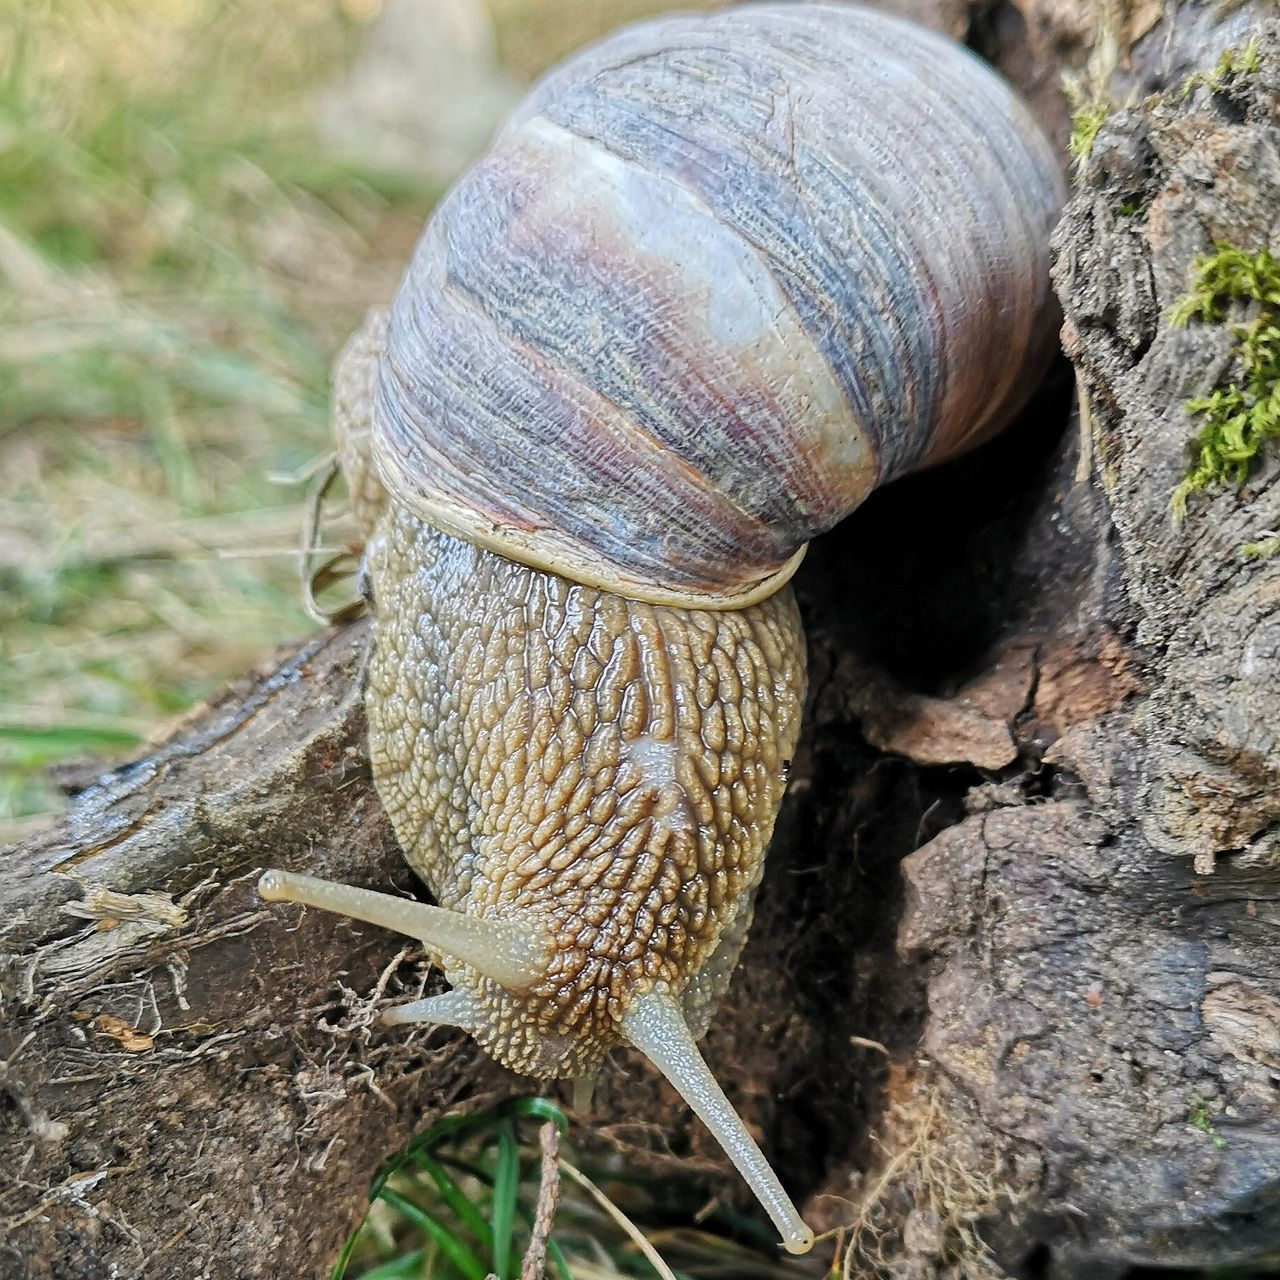 animal, animal wildlife, animal themes, animals in the wild, close-up, invertebrate, one animal, mollusk, shell, gastropod, animal shell, snail, nature, no people, day, animal body part, plant, focus on foreground, tree, tree trunk, outdoors, crawling